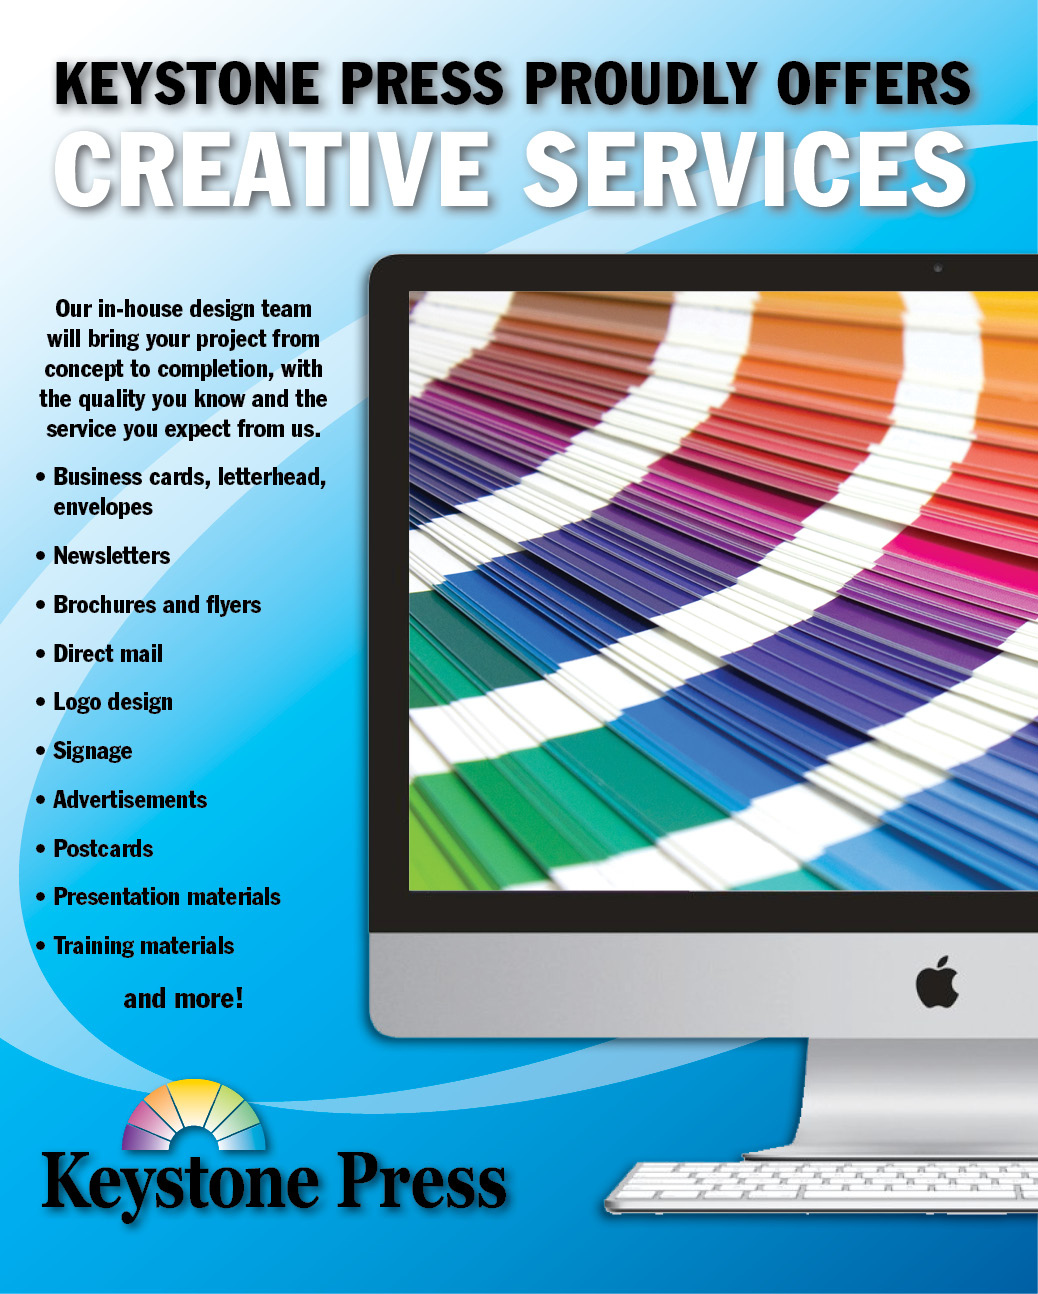 Offering Creative Services